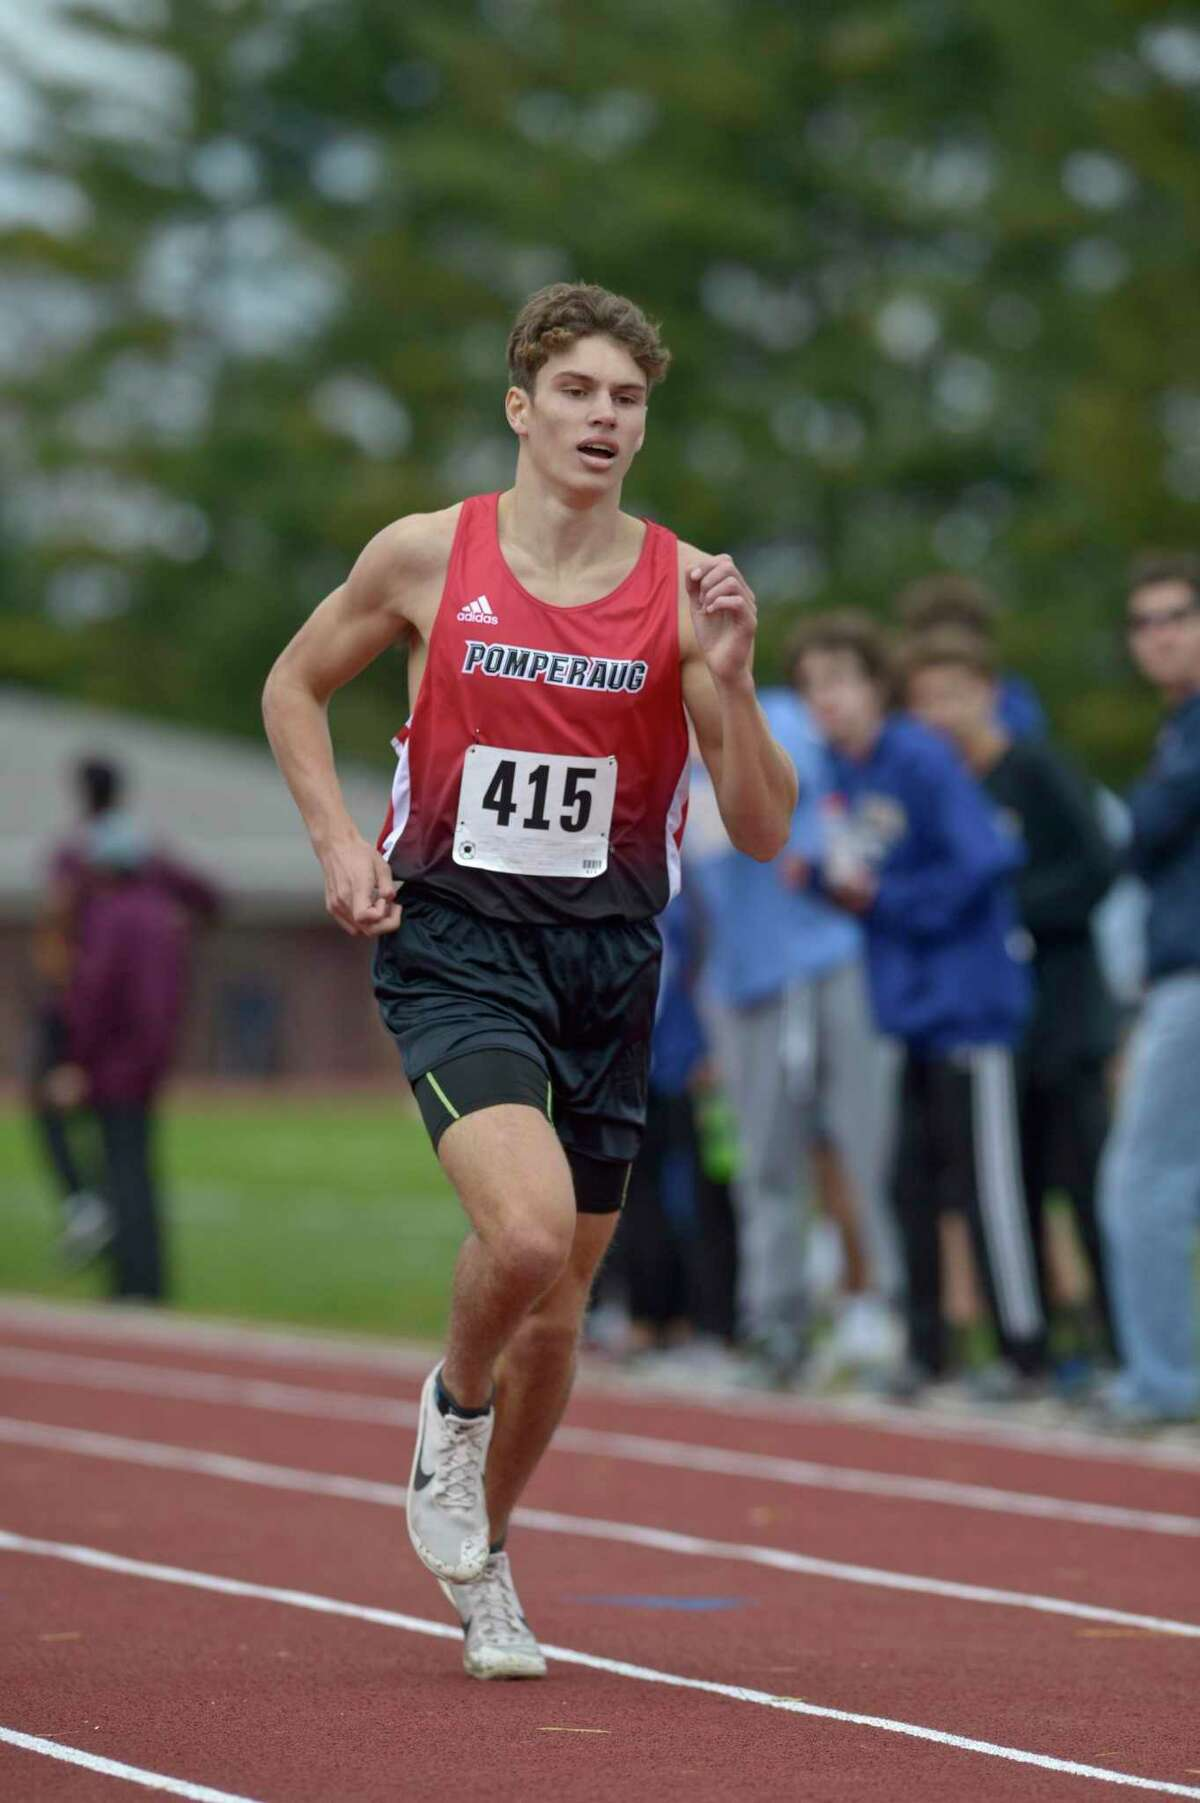 Pomperaug's Trey Generali (415) finished first in the boys SWC cross country championship race with a time of 16:39.15., Friday afternoon, October 18, 2019, at Bethel High School, Bethel, Conn.